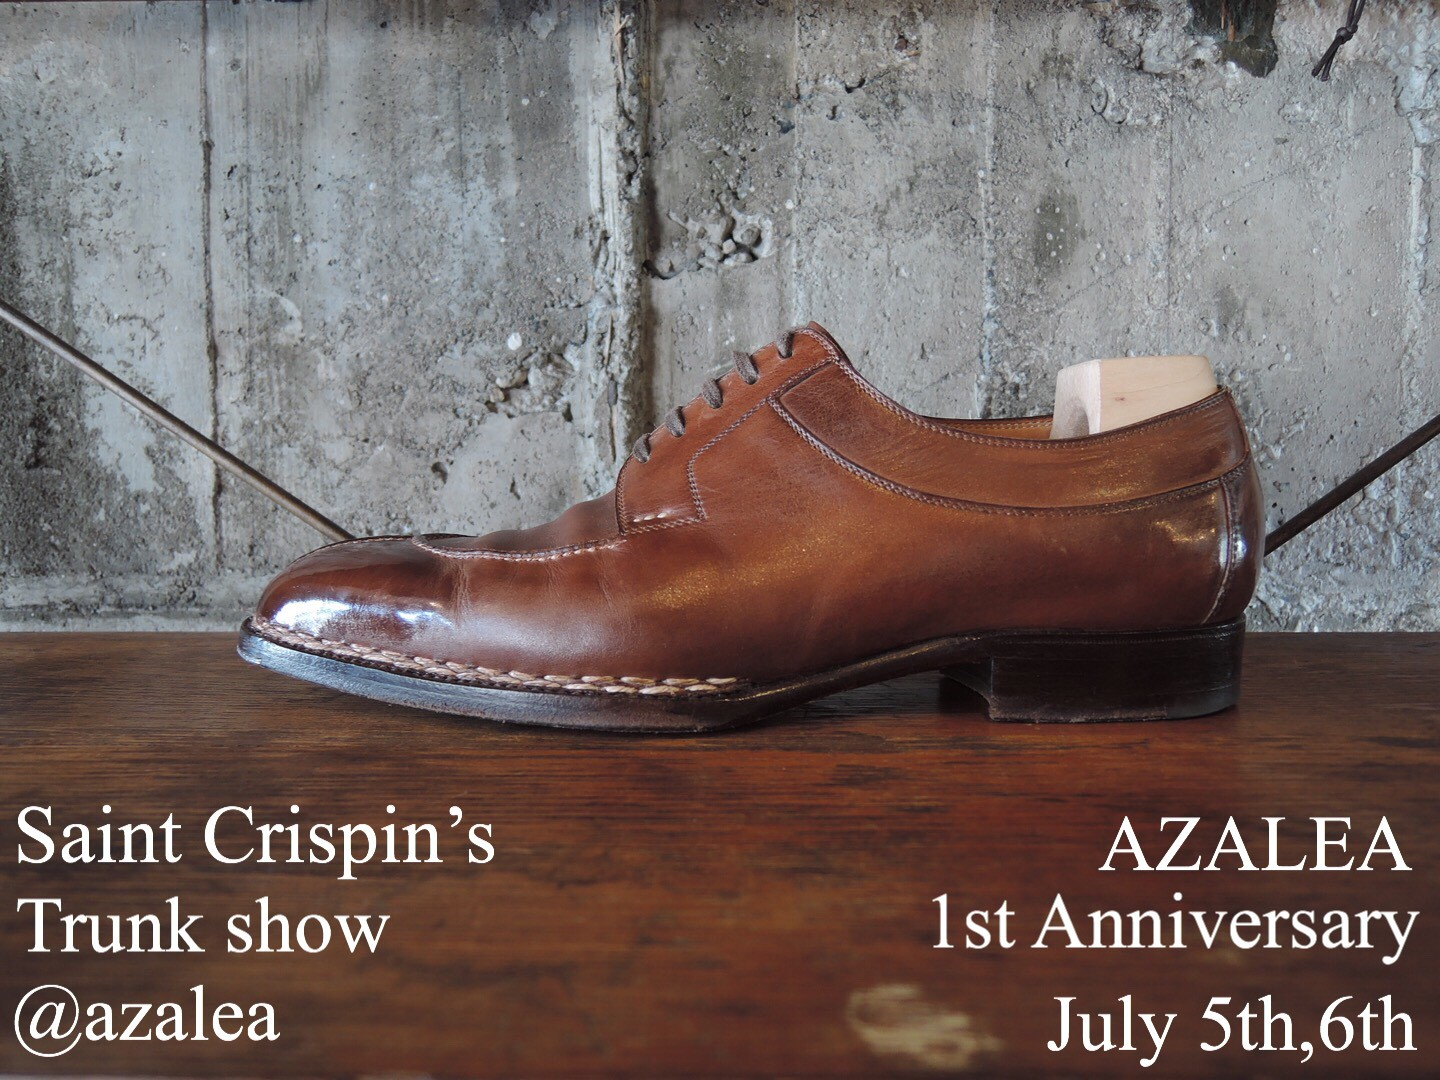 SAINT CRISPIN'S TRUNK SHOW July 5th and 6th